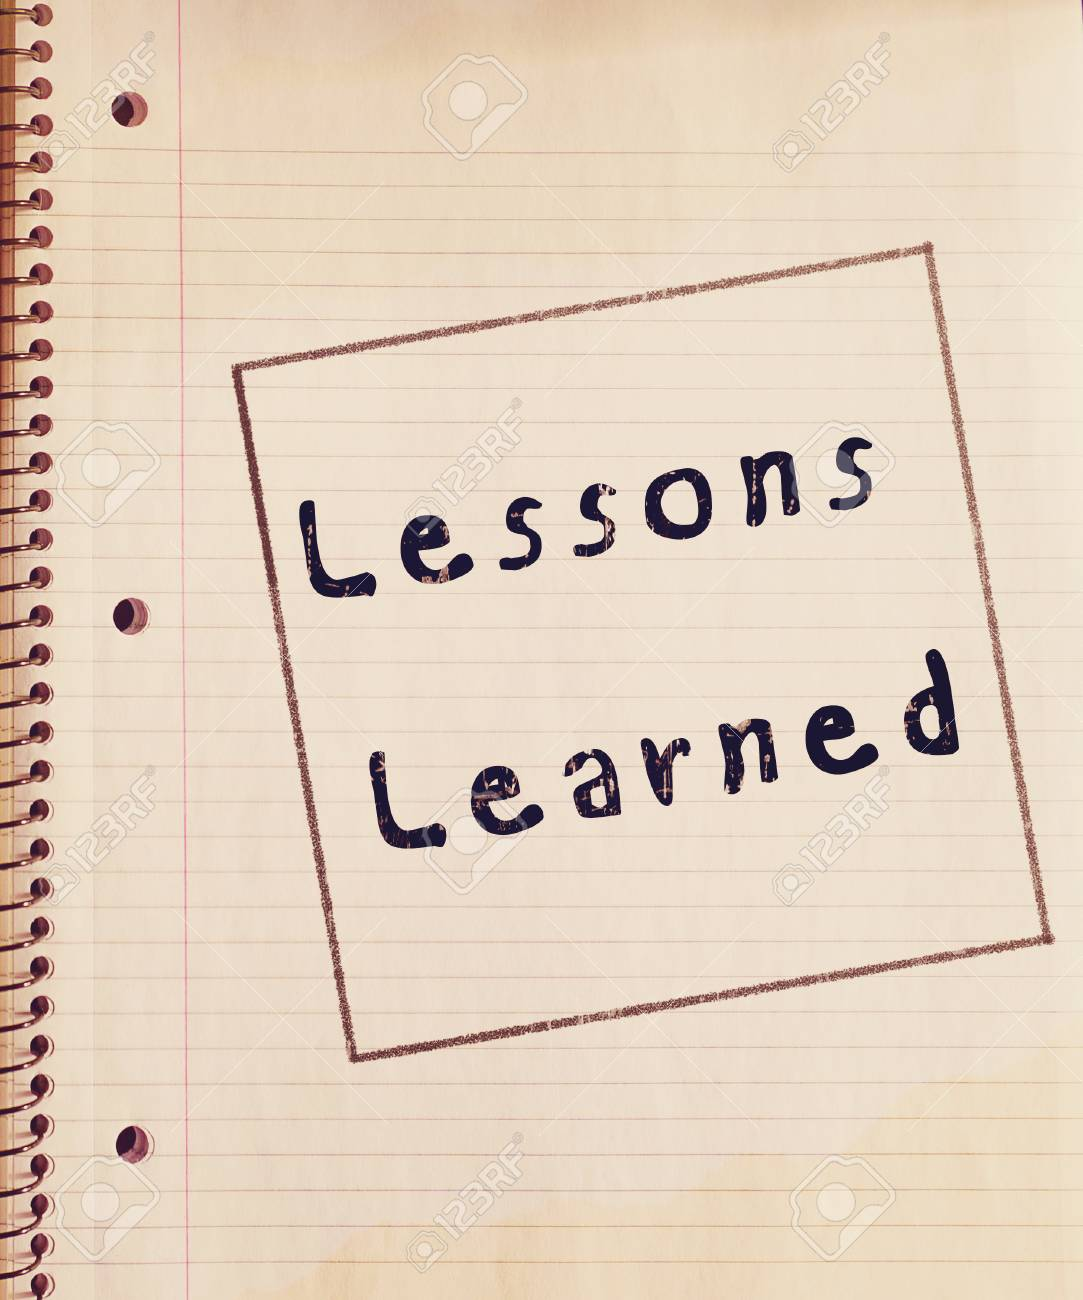 Image result for lessons learned free image